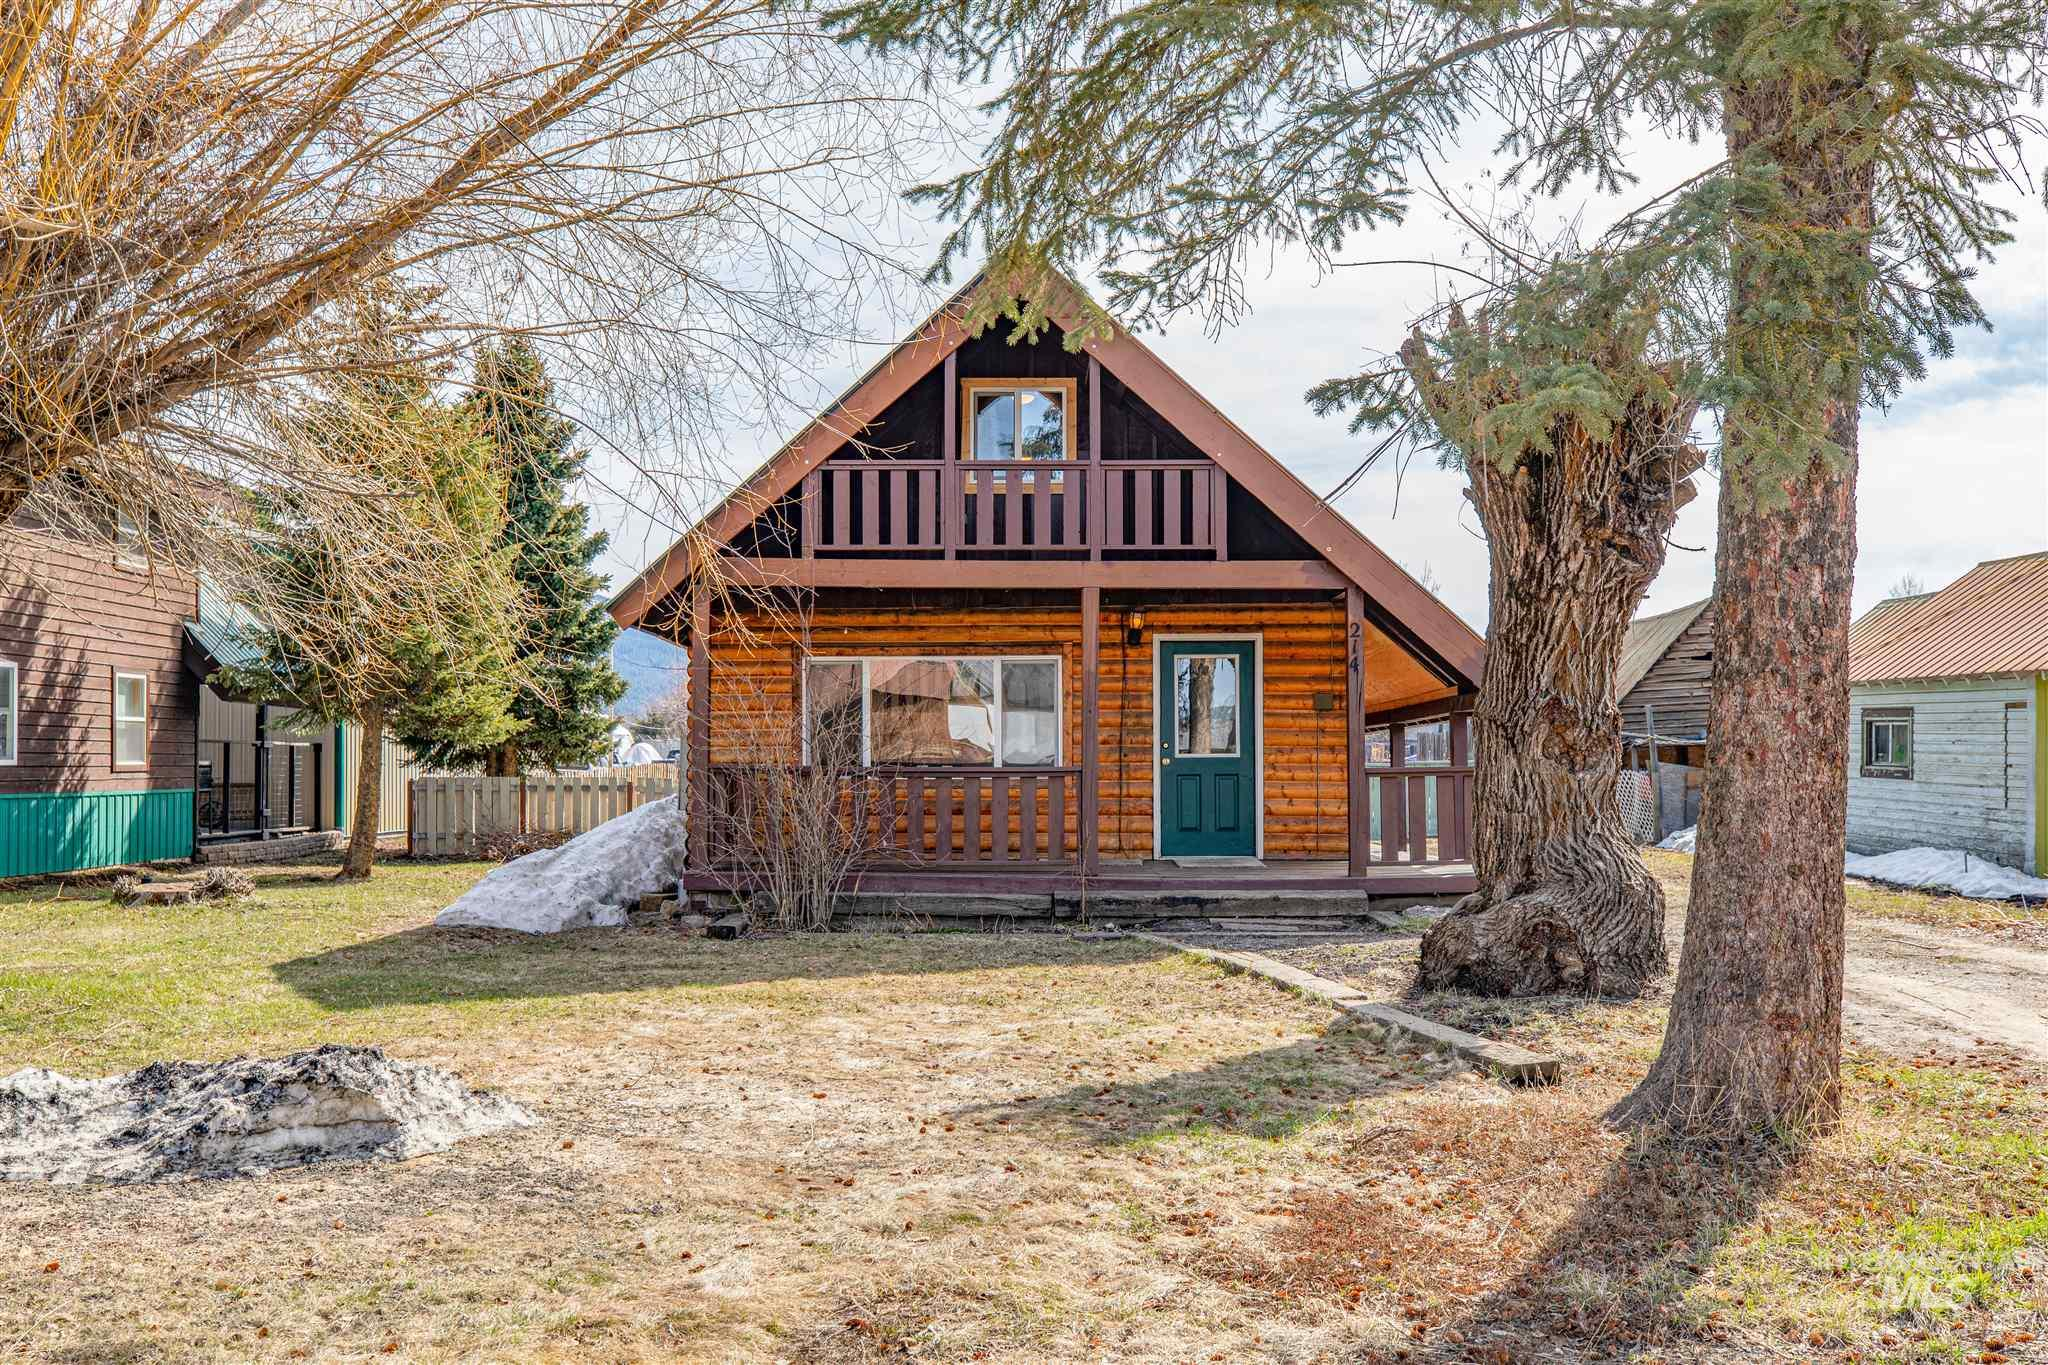 214 S Heigho Property Photo - New Meadows, ID real estate listing